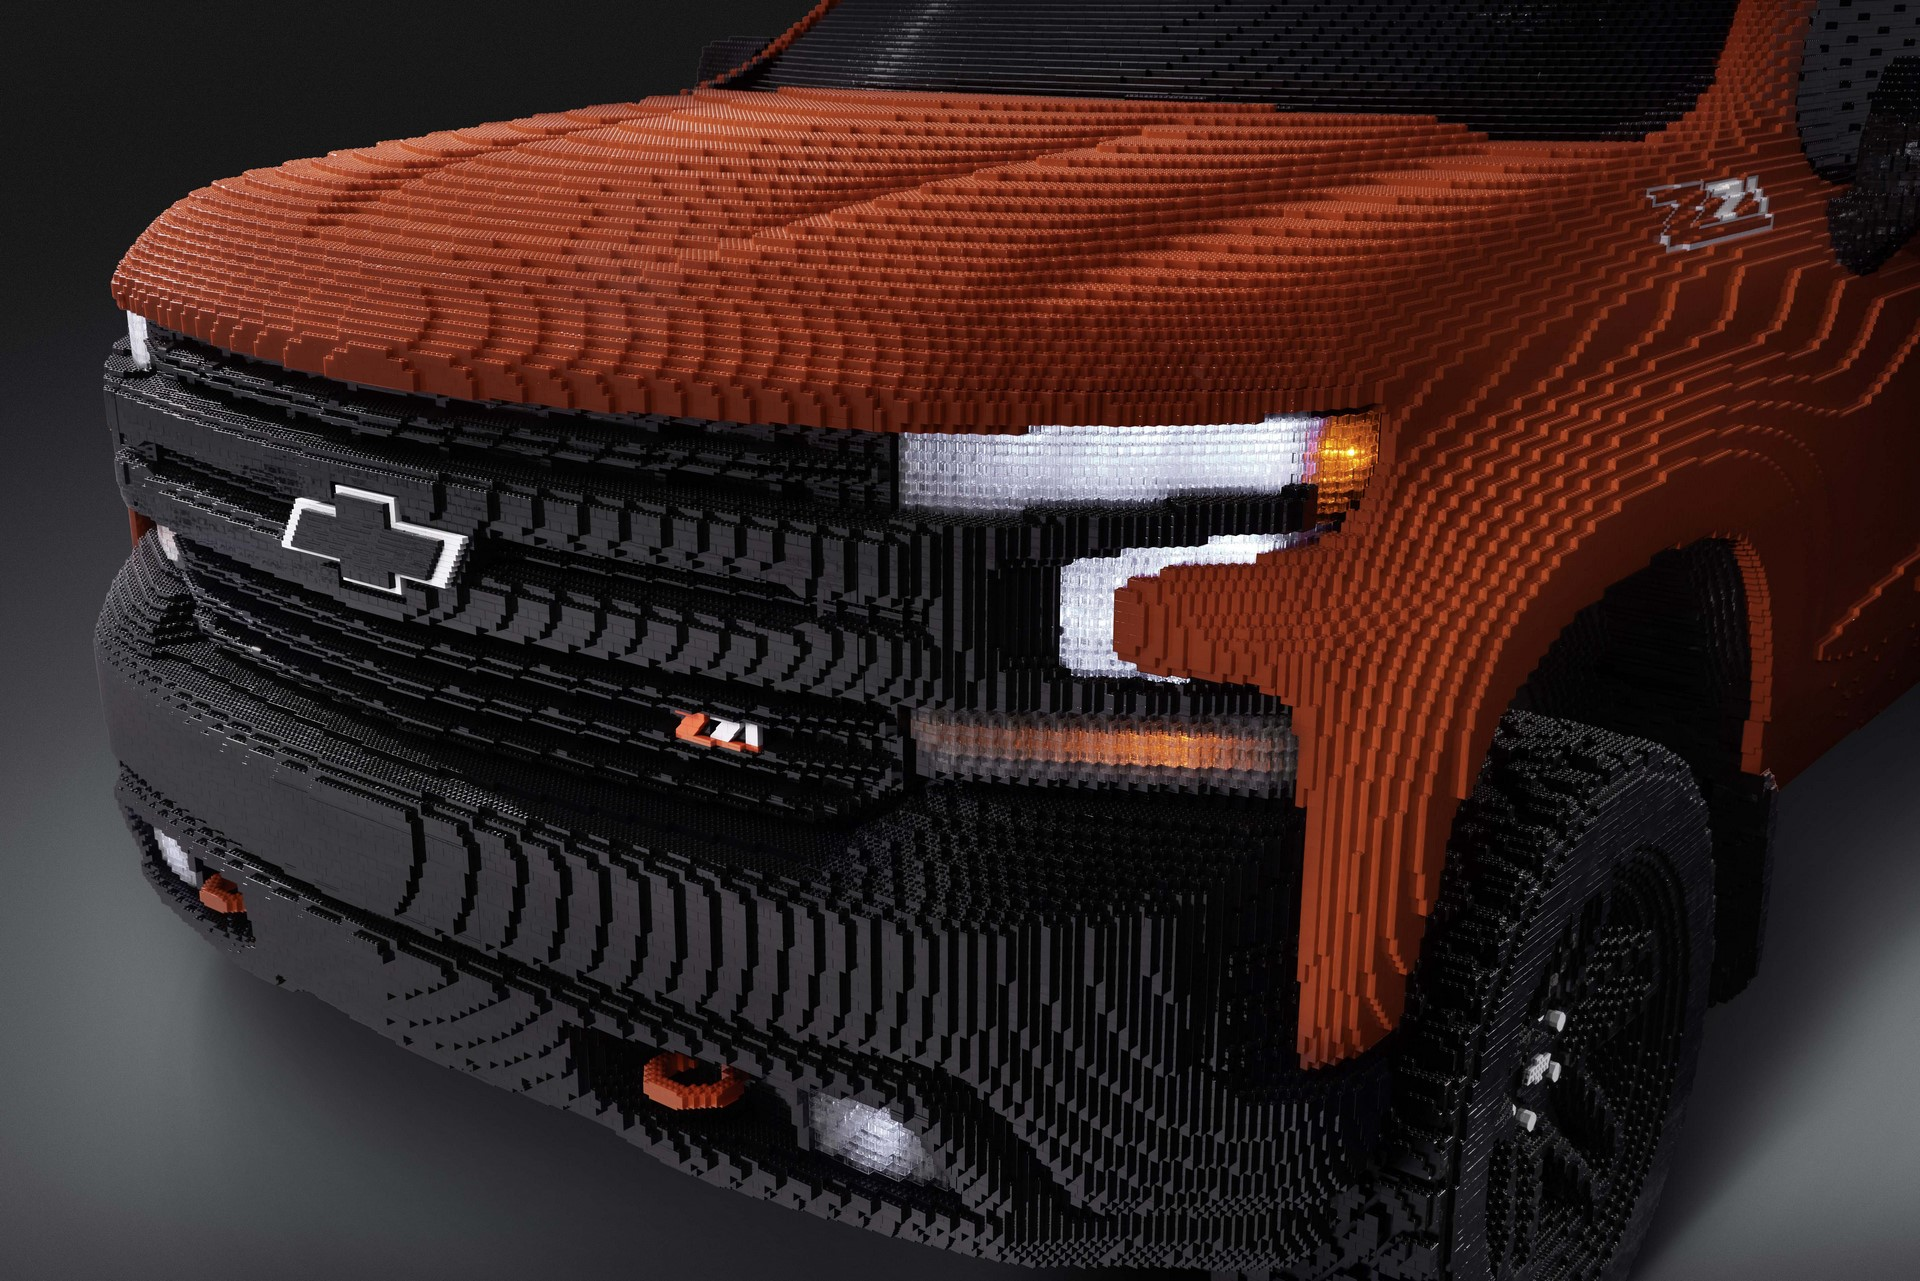 As an exact replica of the Silverado 1500 LT Trail Boss, LEGO® Silverado has unique working lights and graphic details.